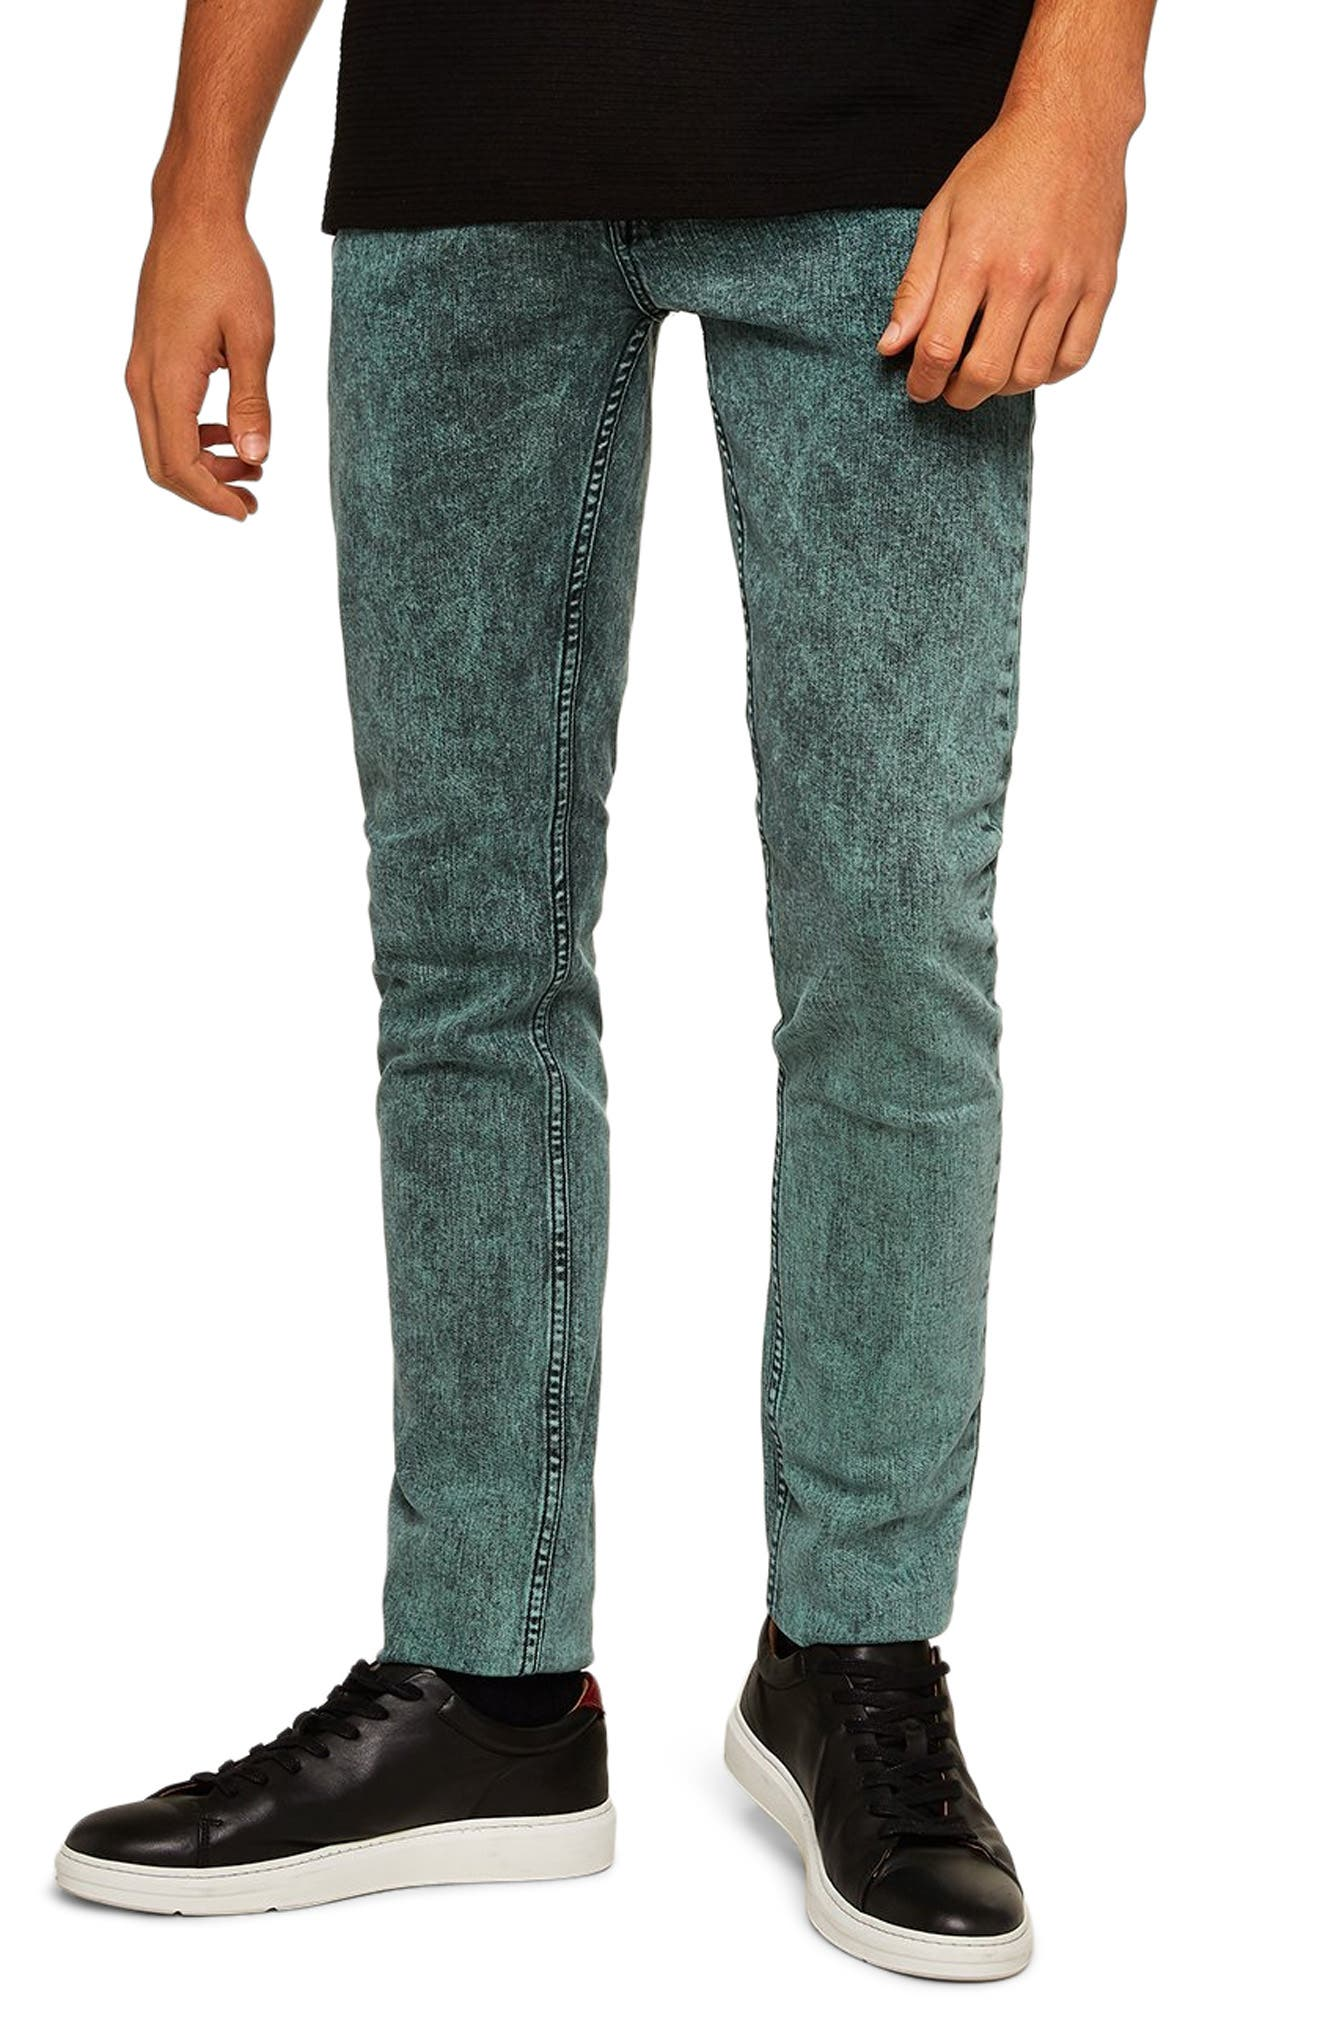 Acid Wash Stretch Skinny Jeans,                             Main thumbnail 1, color,                             BLUE/GREEN MULTI